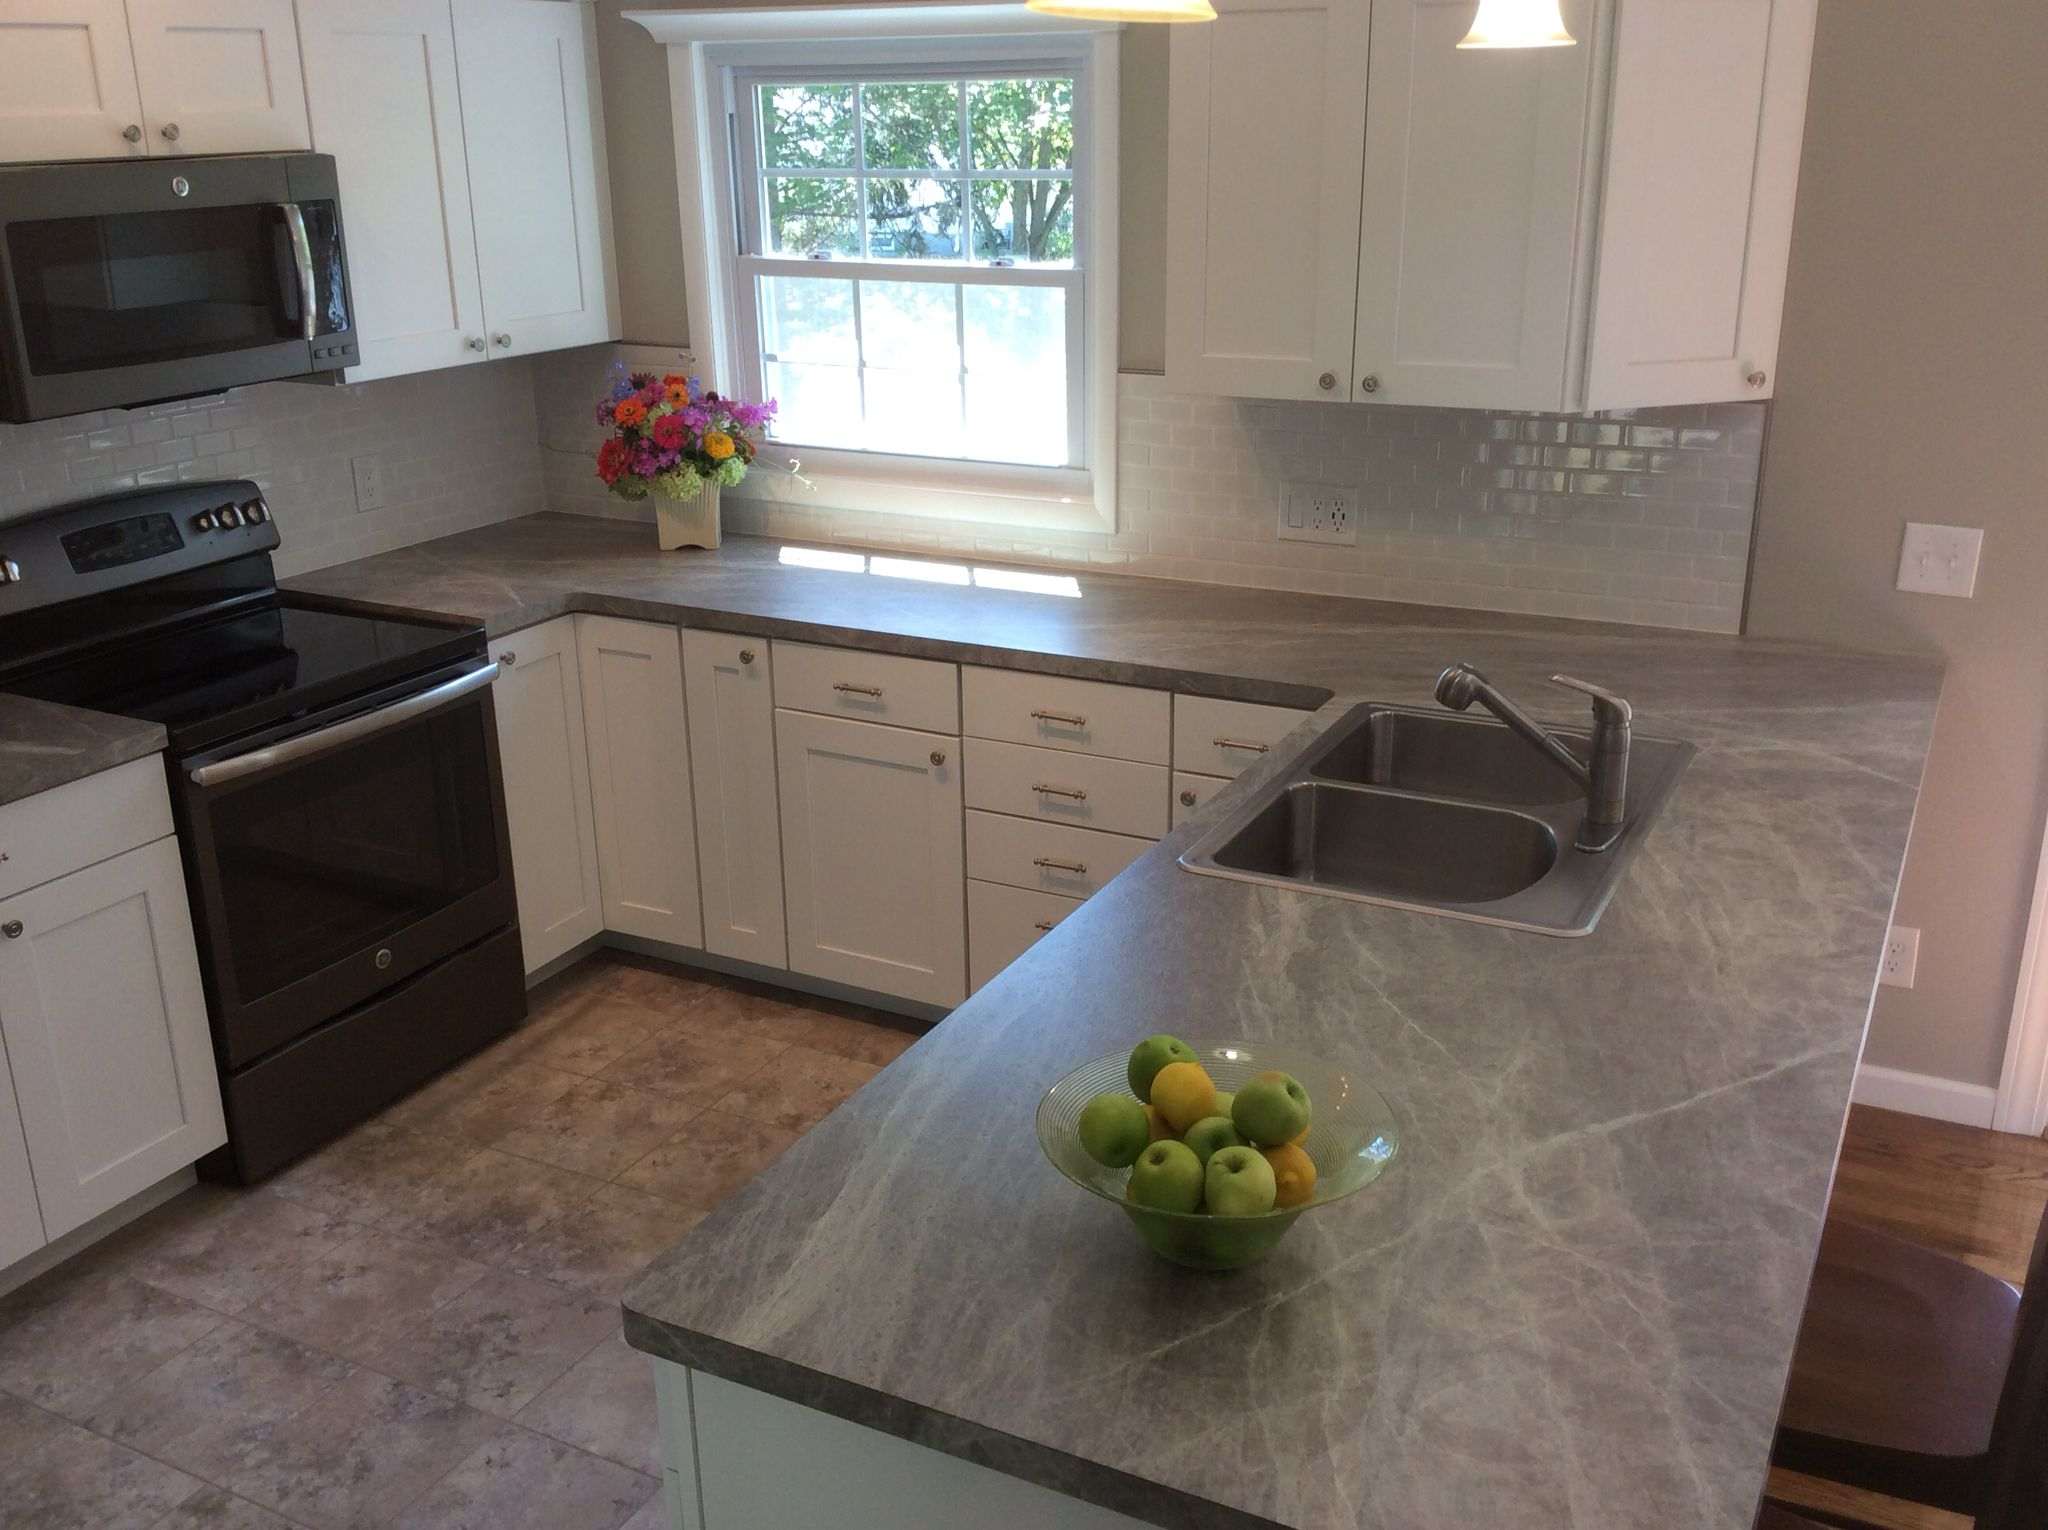 Sequoia Soapstone Formica Countertops Kitchen Countertops Kitchen Improvements Kitchen Renovation